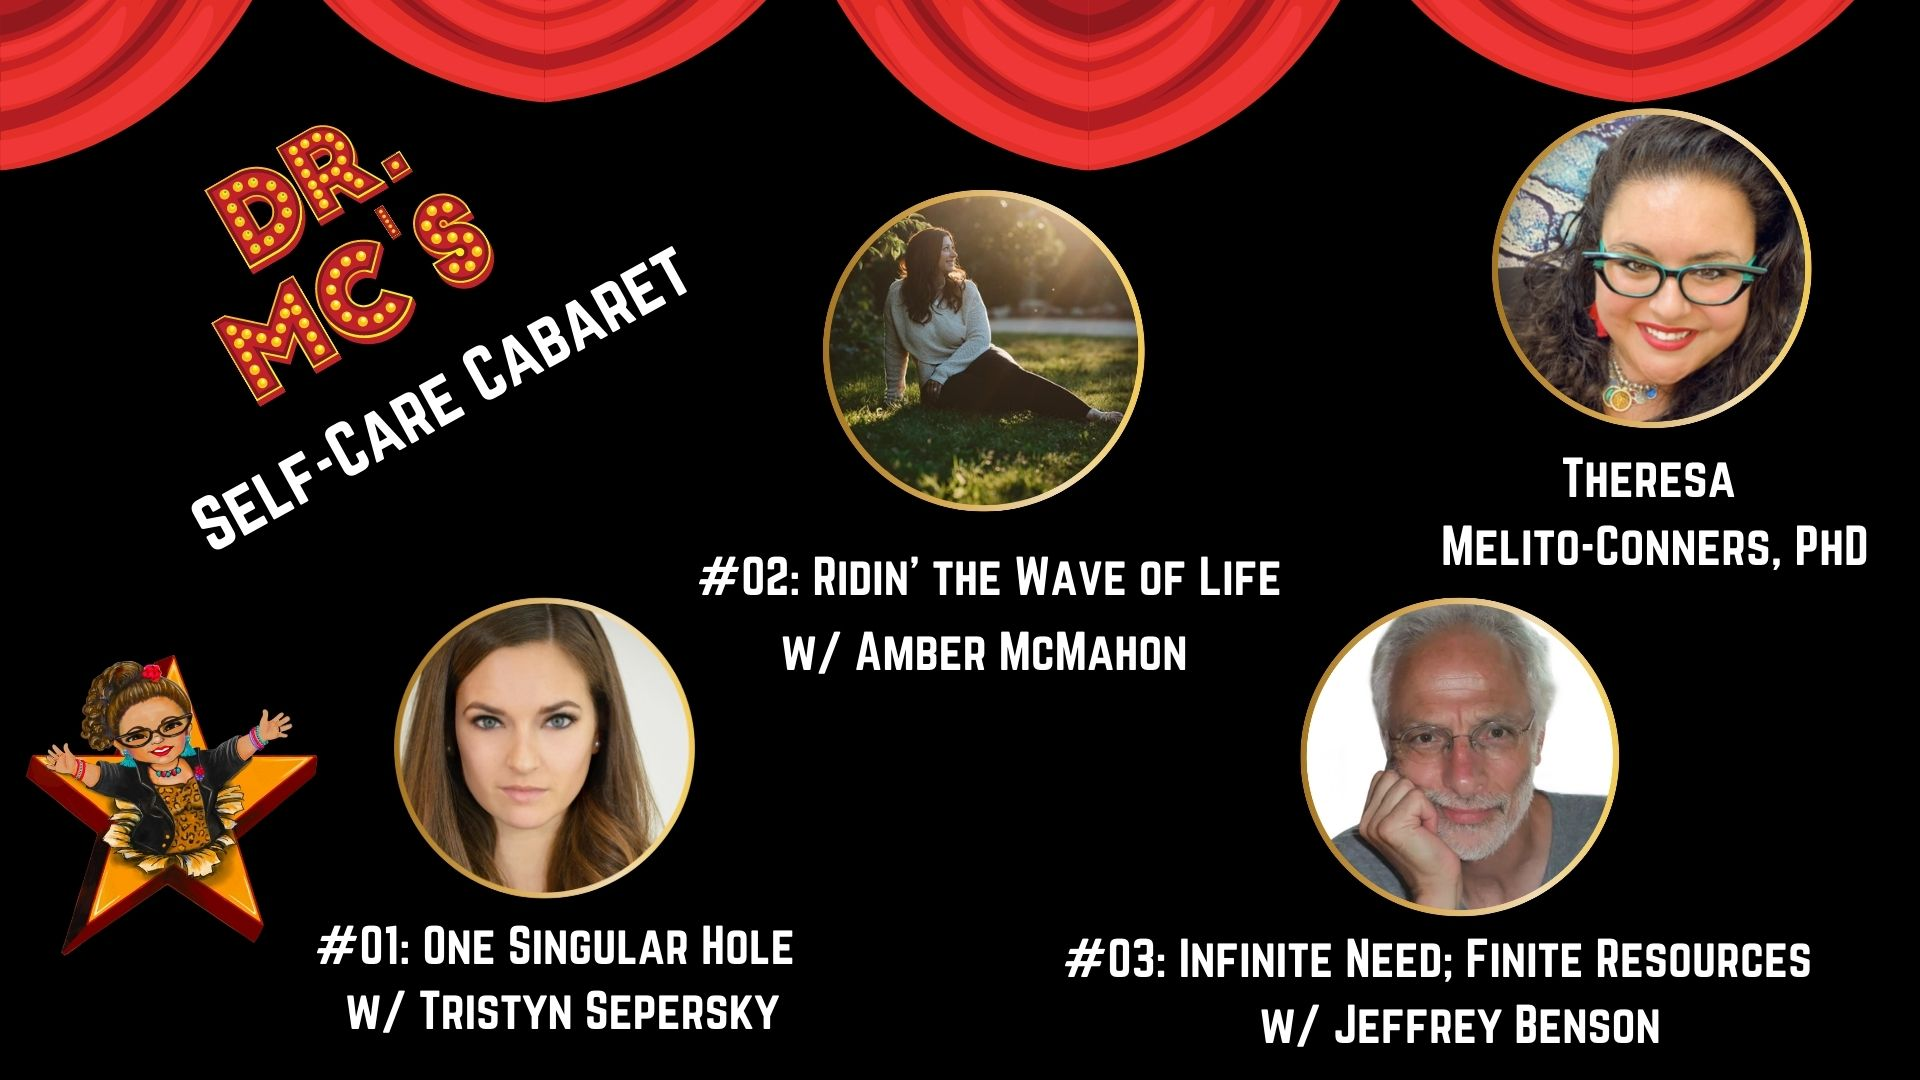 Dr. MC's Self-care cabaret podcast first 3 episodes